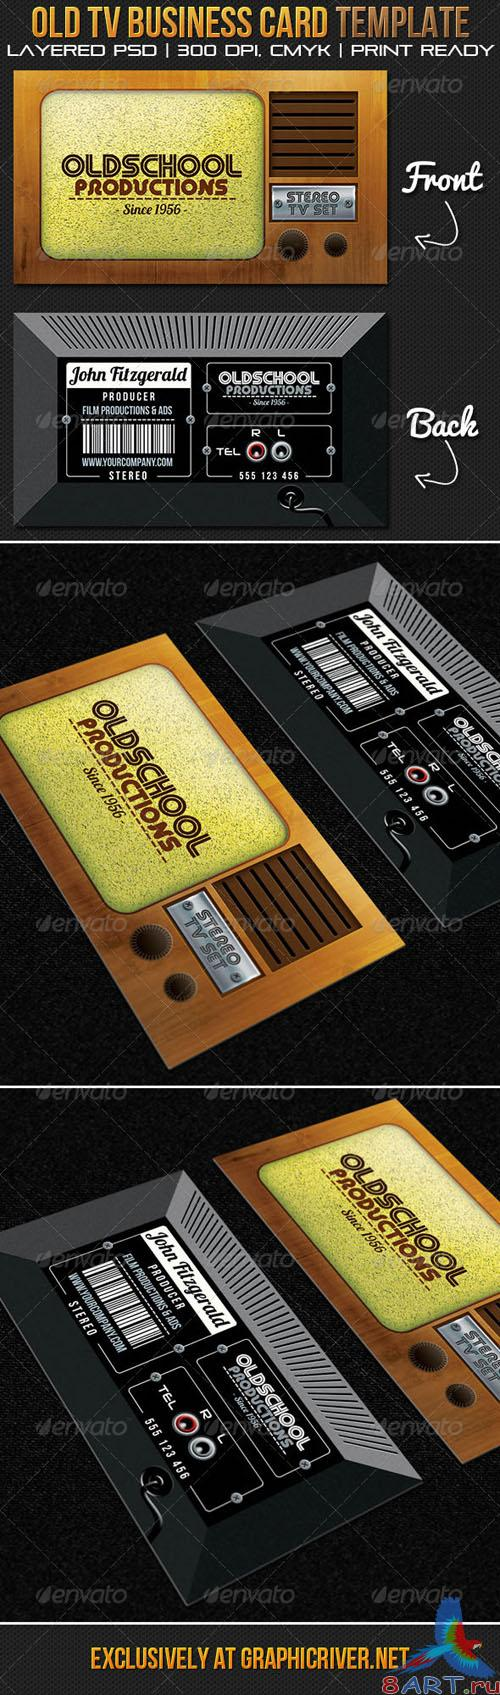 GraphicRiver - Oldschool Productions Business Card Template 2725802